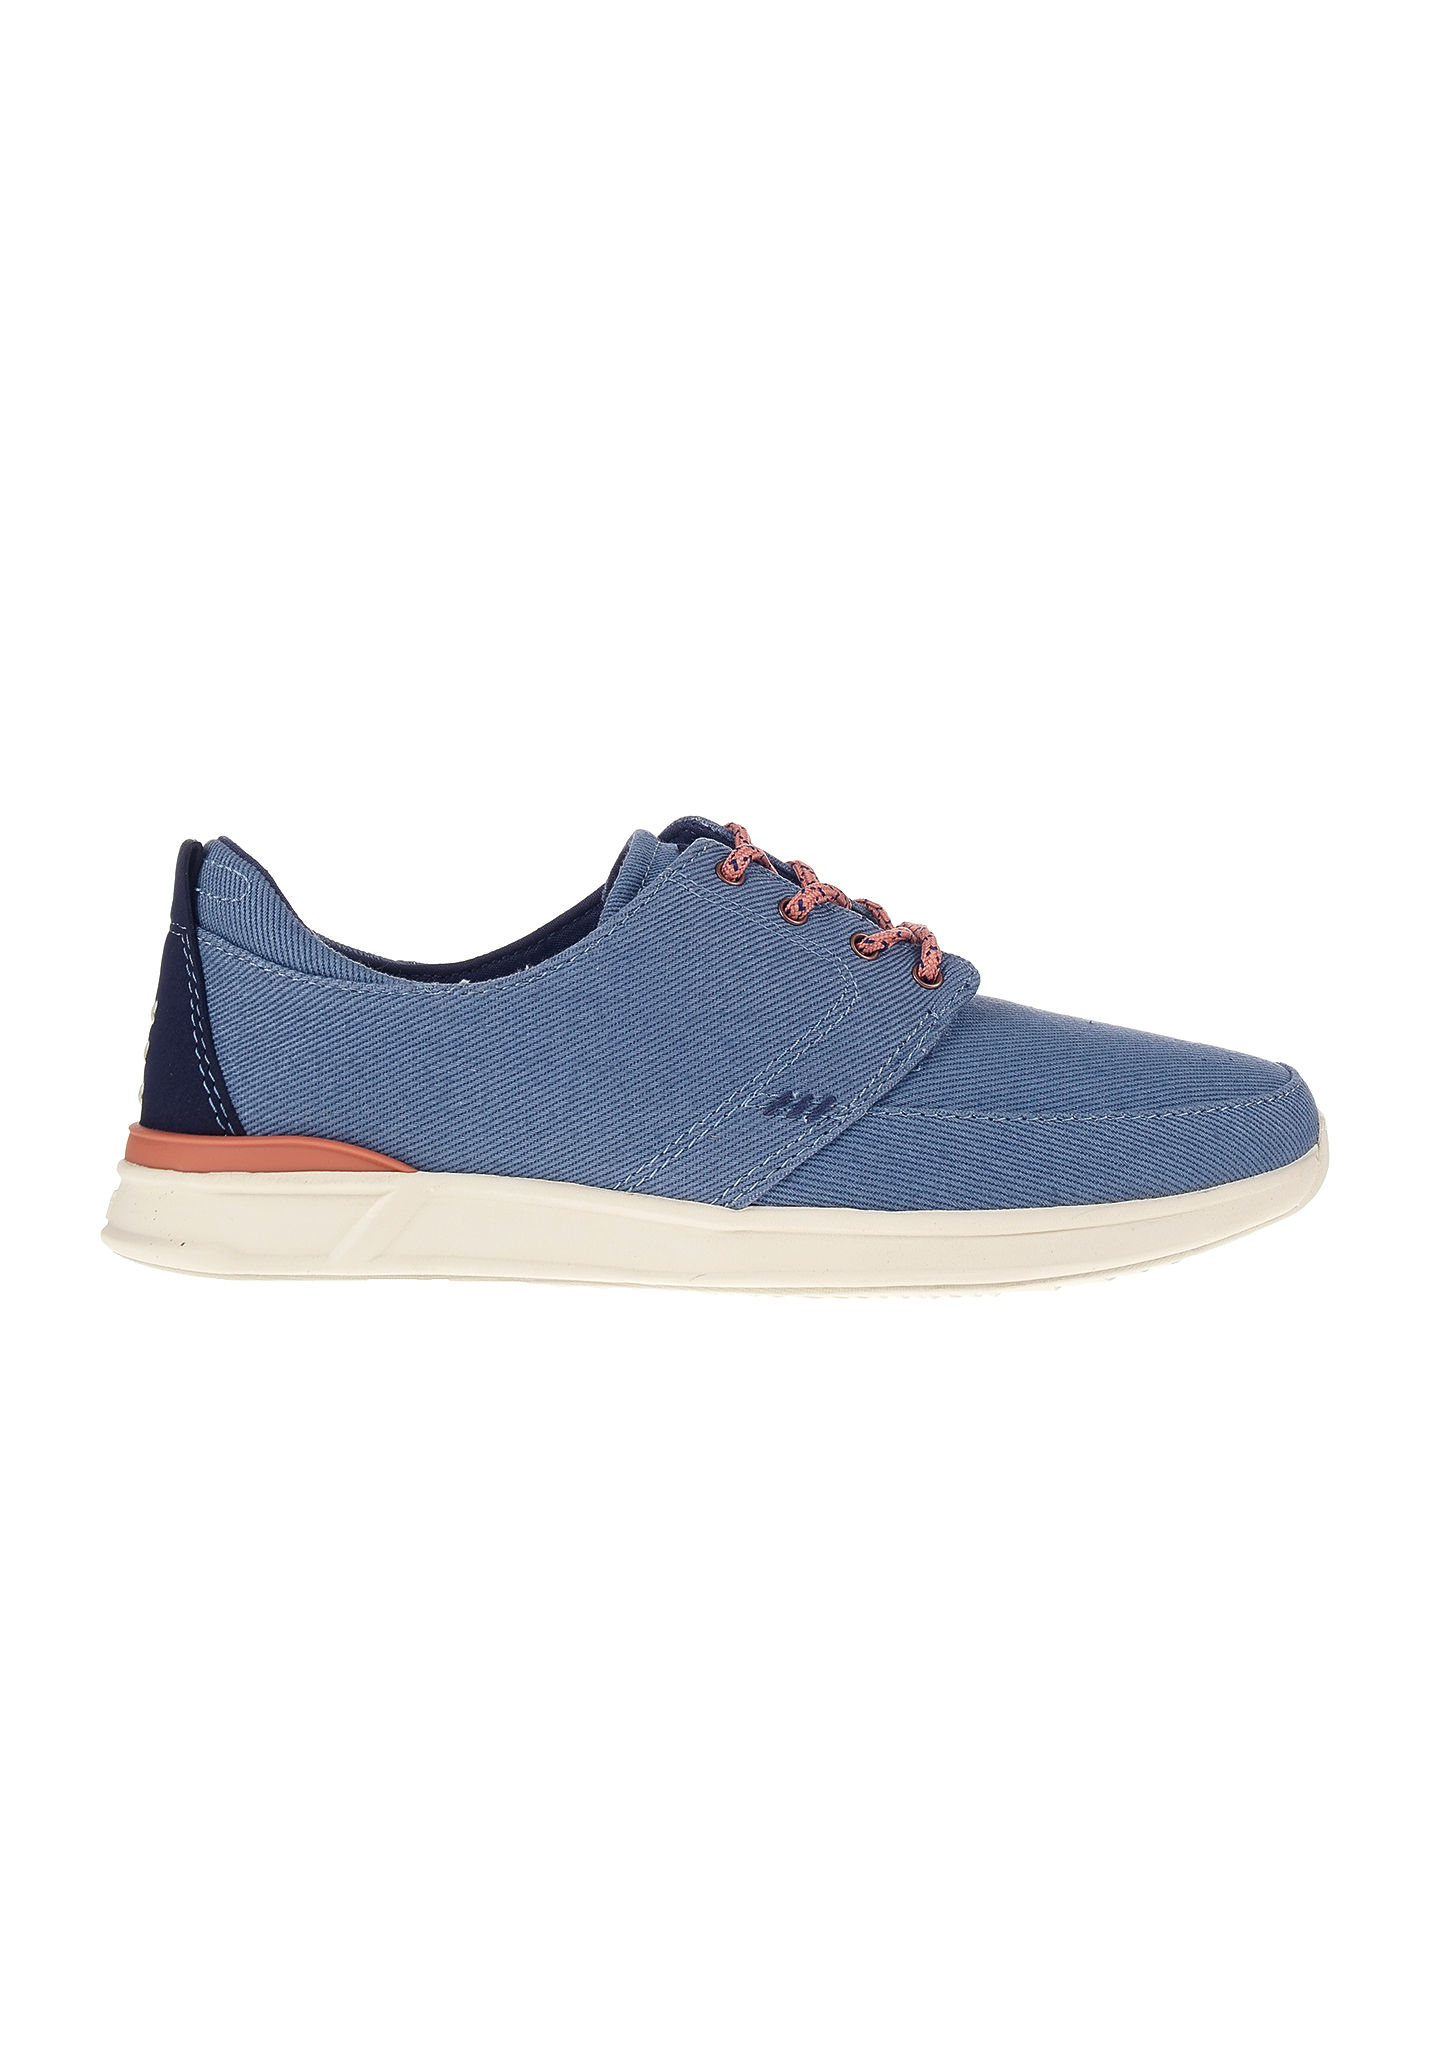 0b8800992517 Reef Rover Low - Sneakers for Women - Blue - Planet Sports